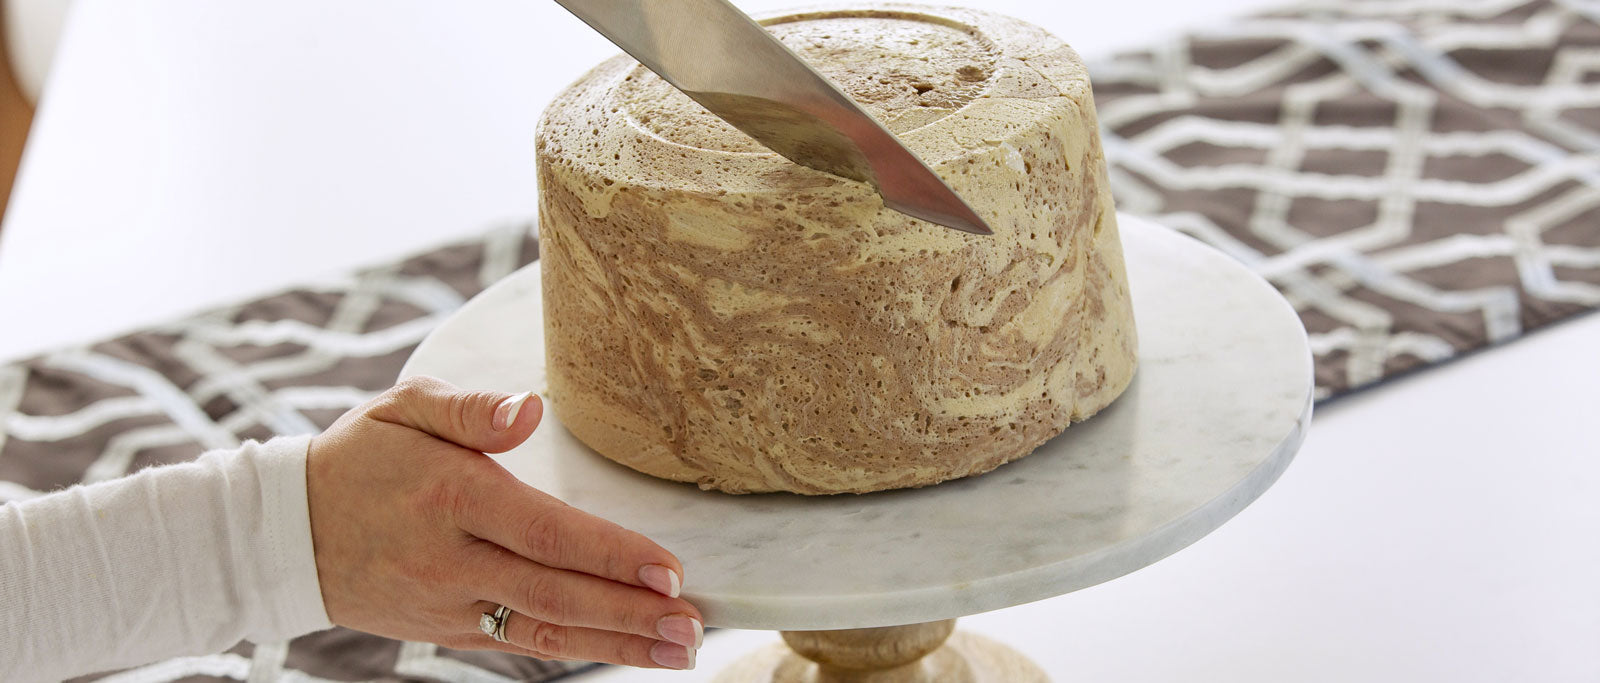 Halva cake being sliced